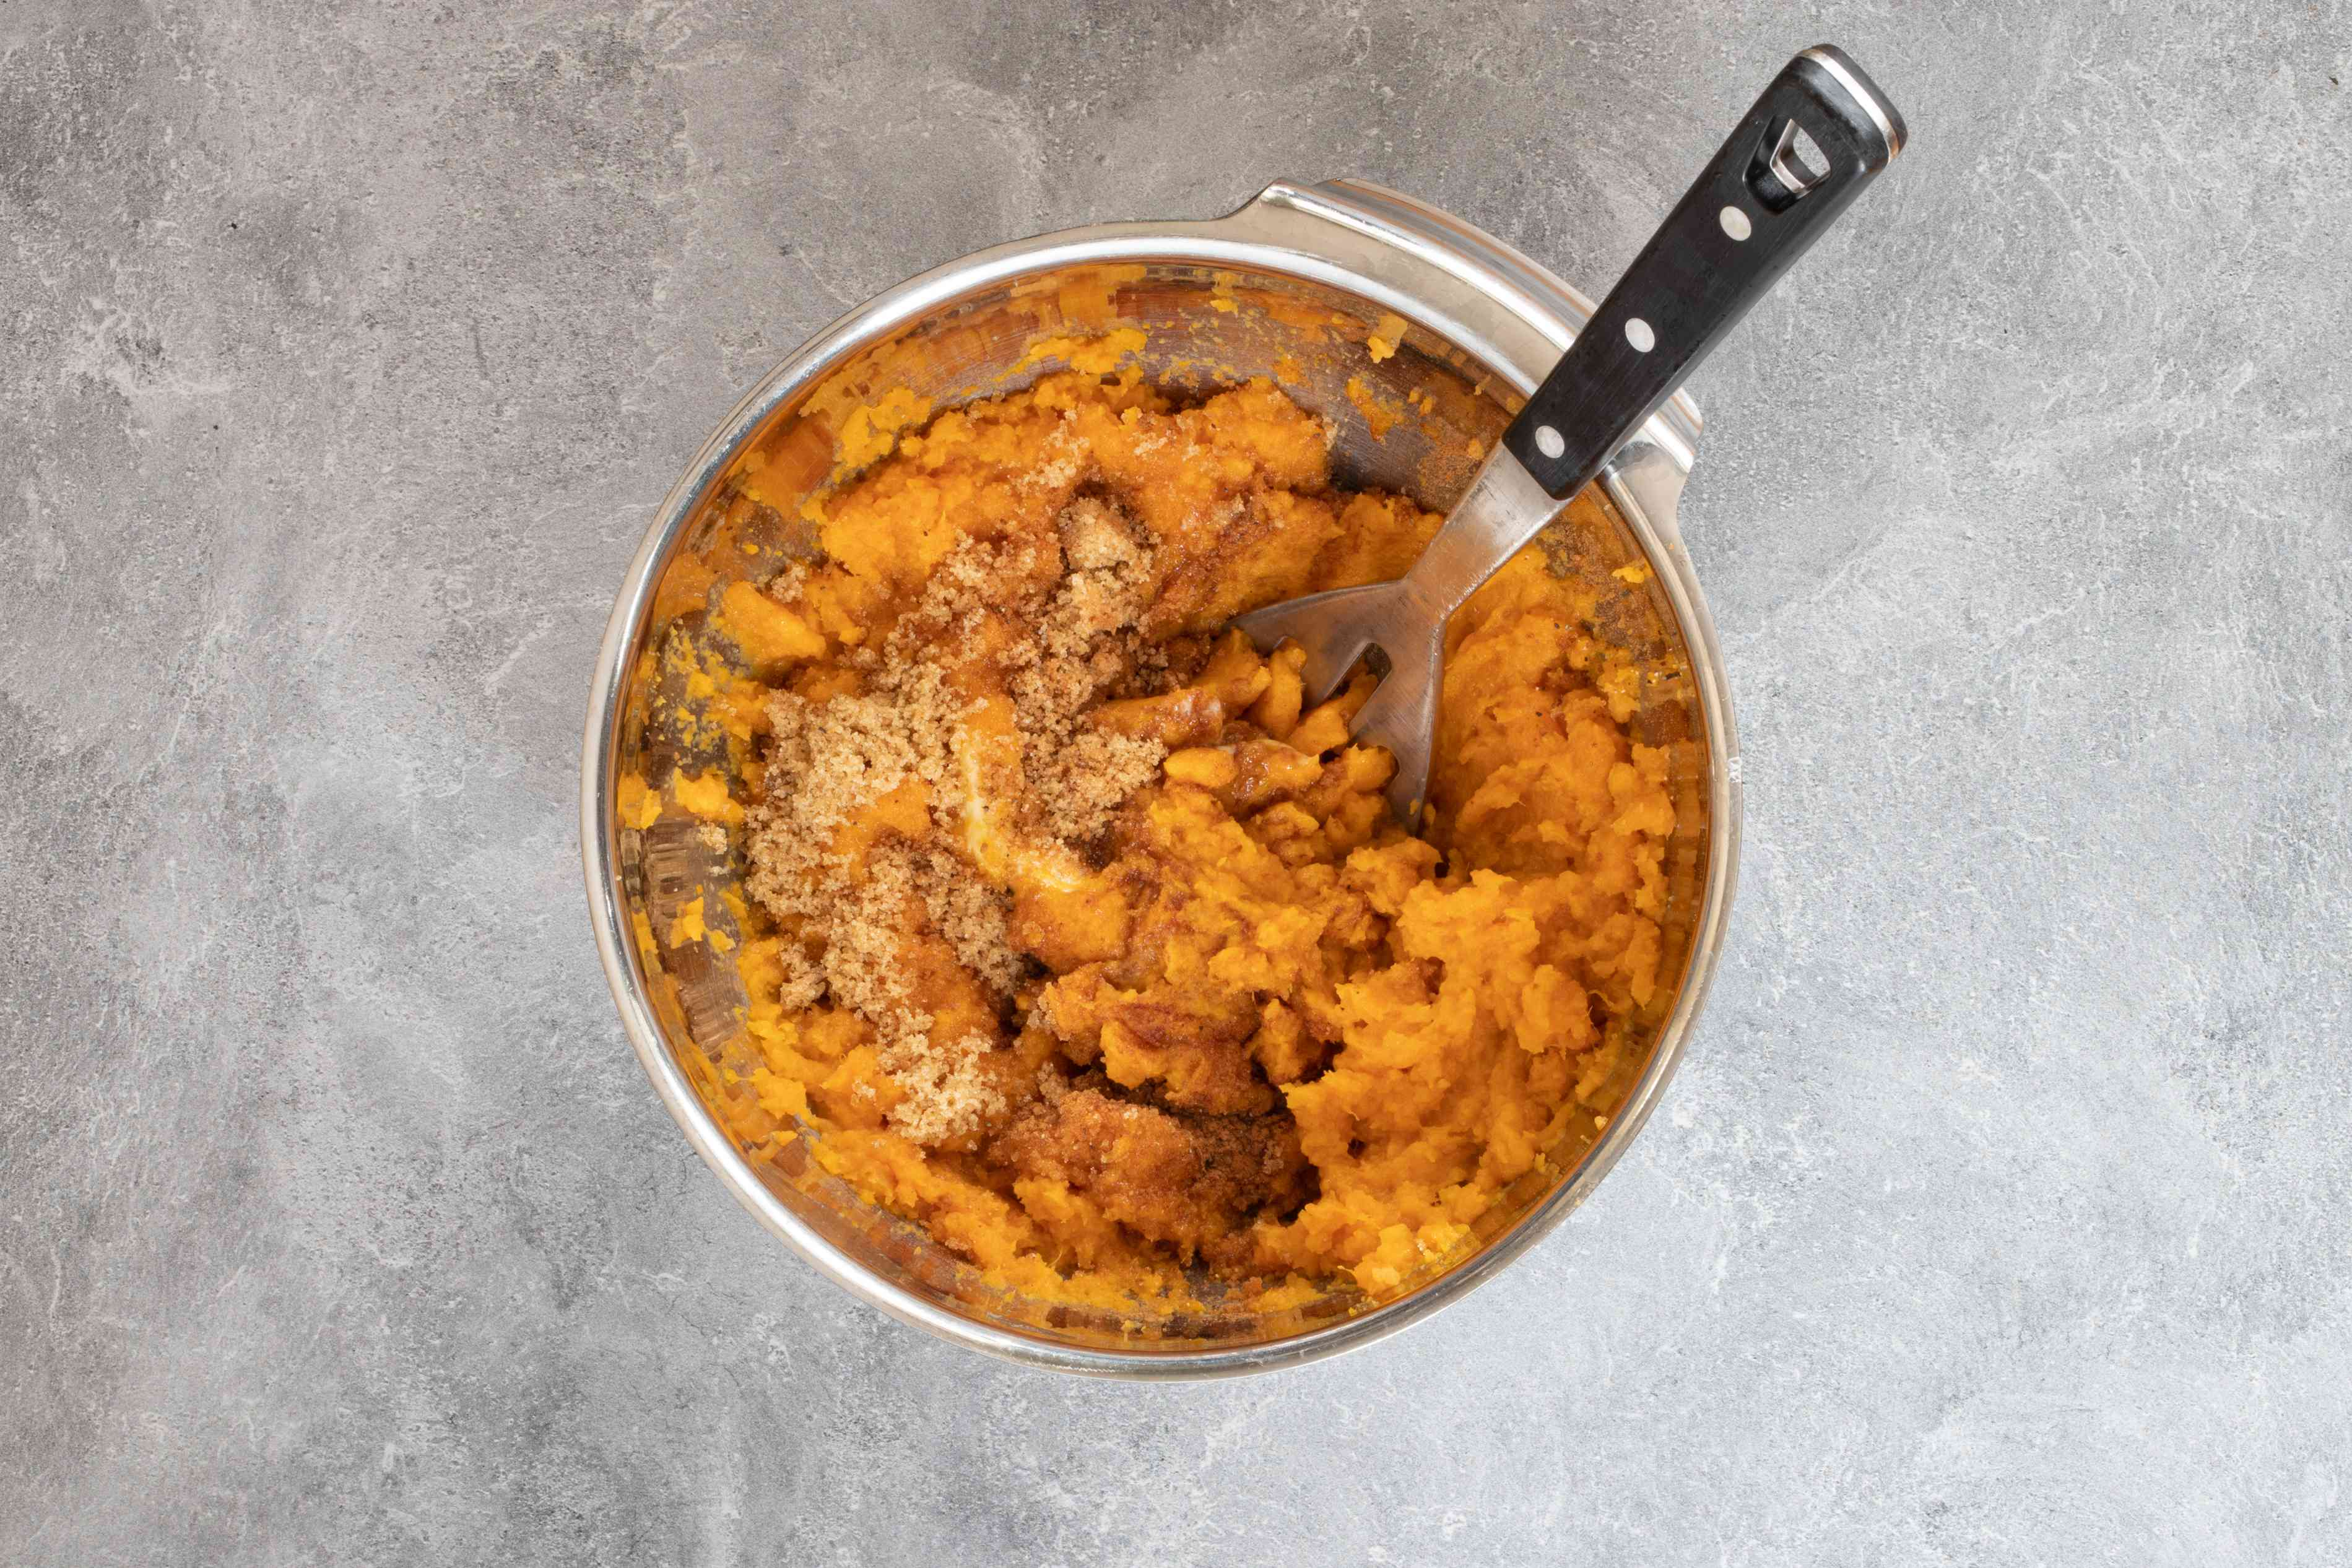 fFilling for twice-baked sweet potatoes in a mixing bowl